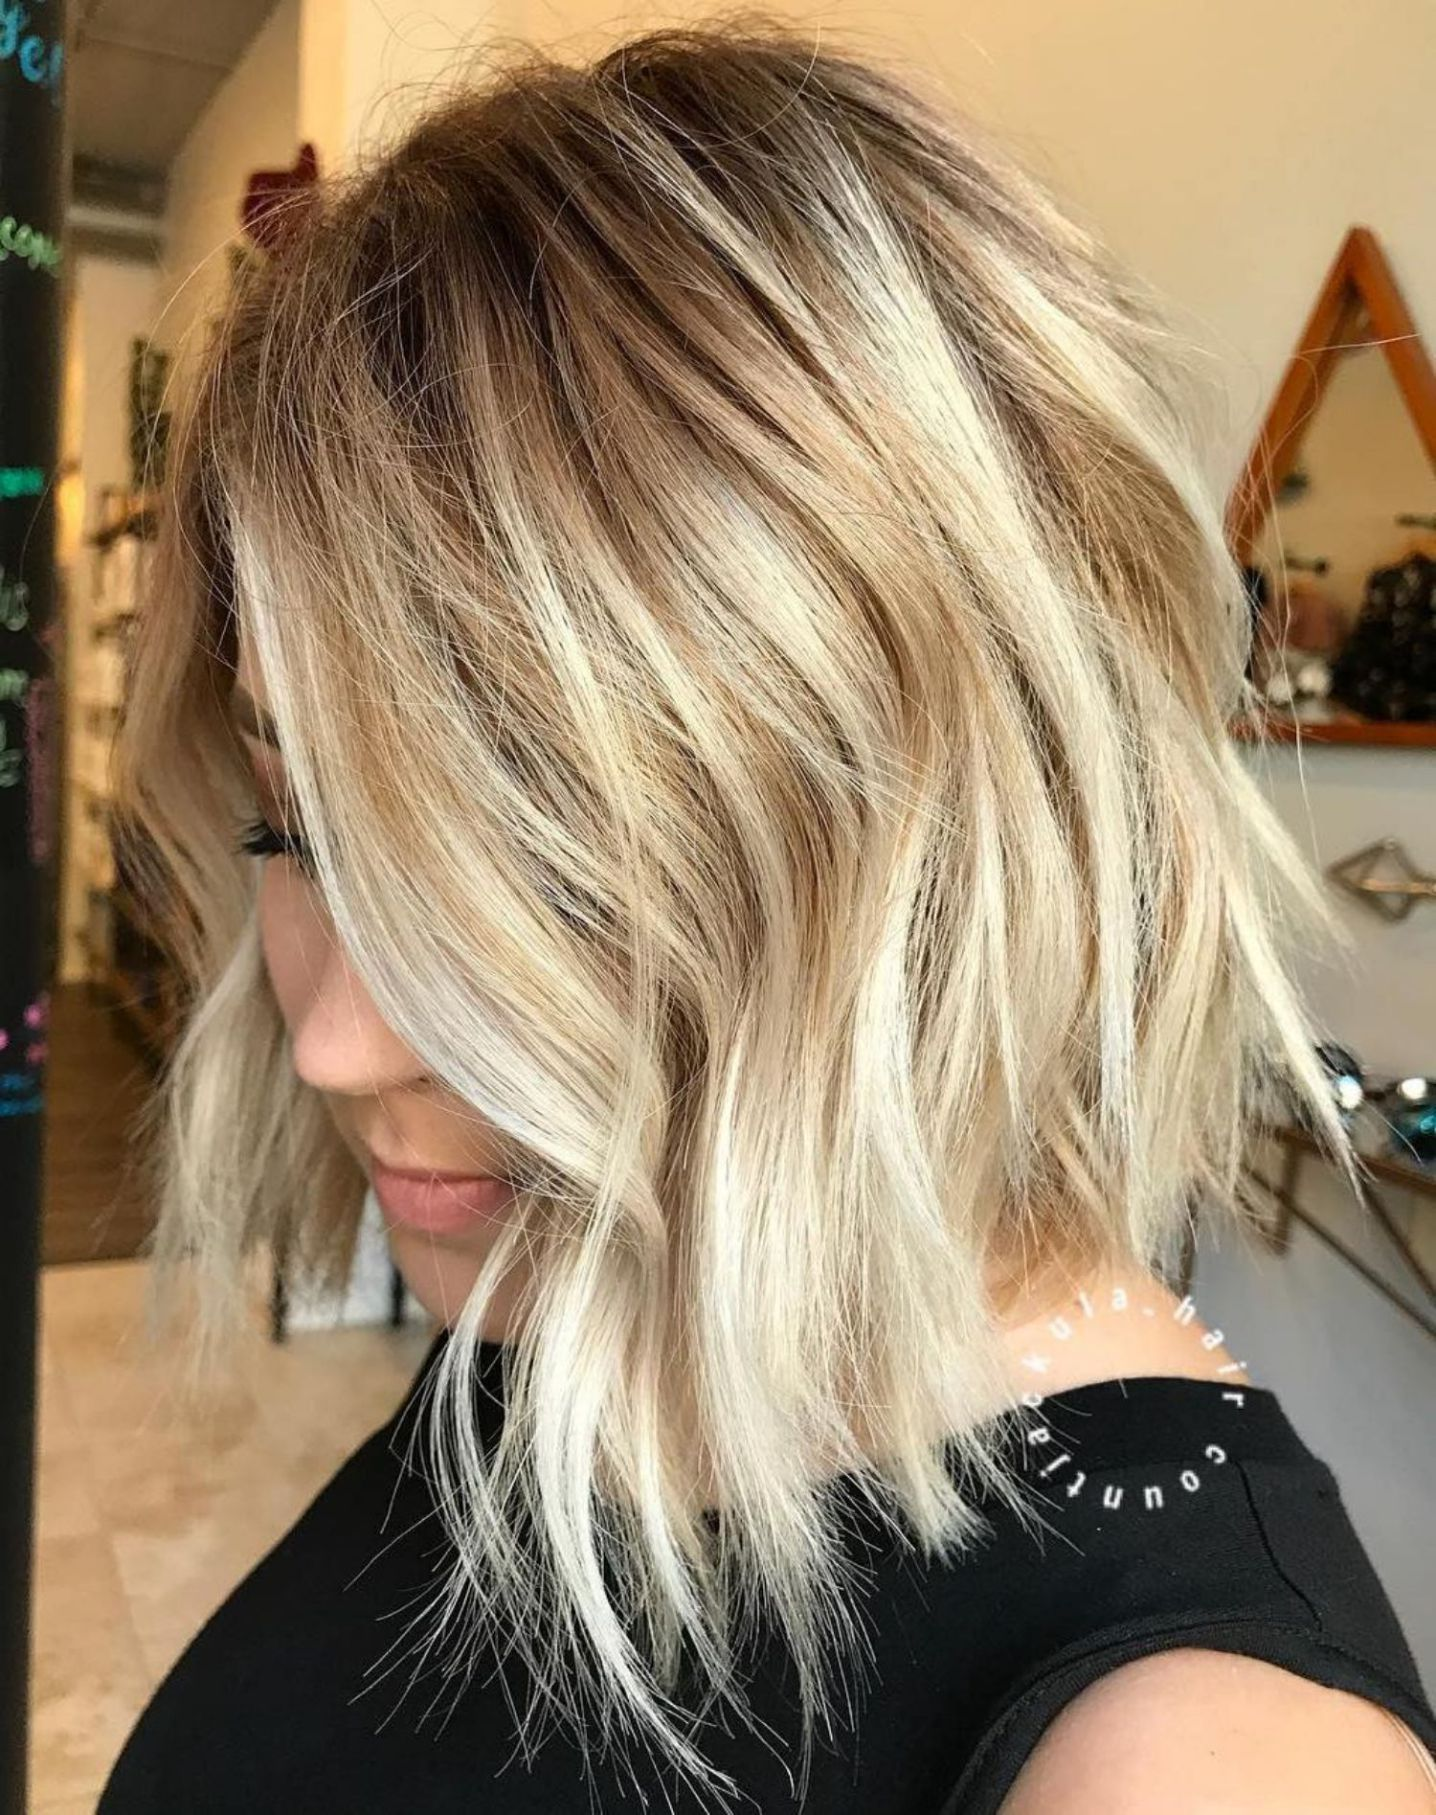 Inspiring Long Bob Hairstyles and Haircuts in Hair dous